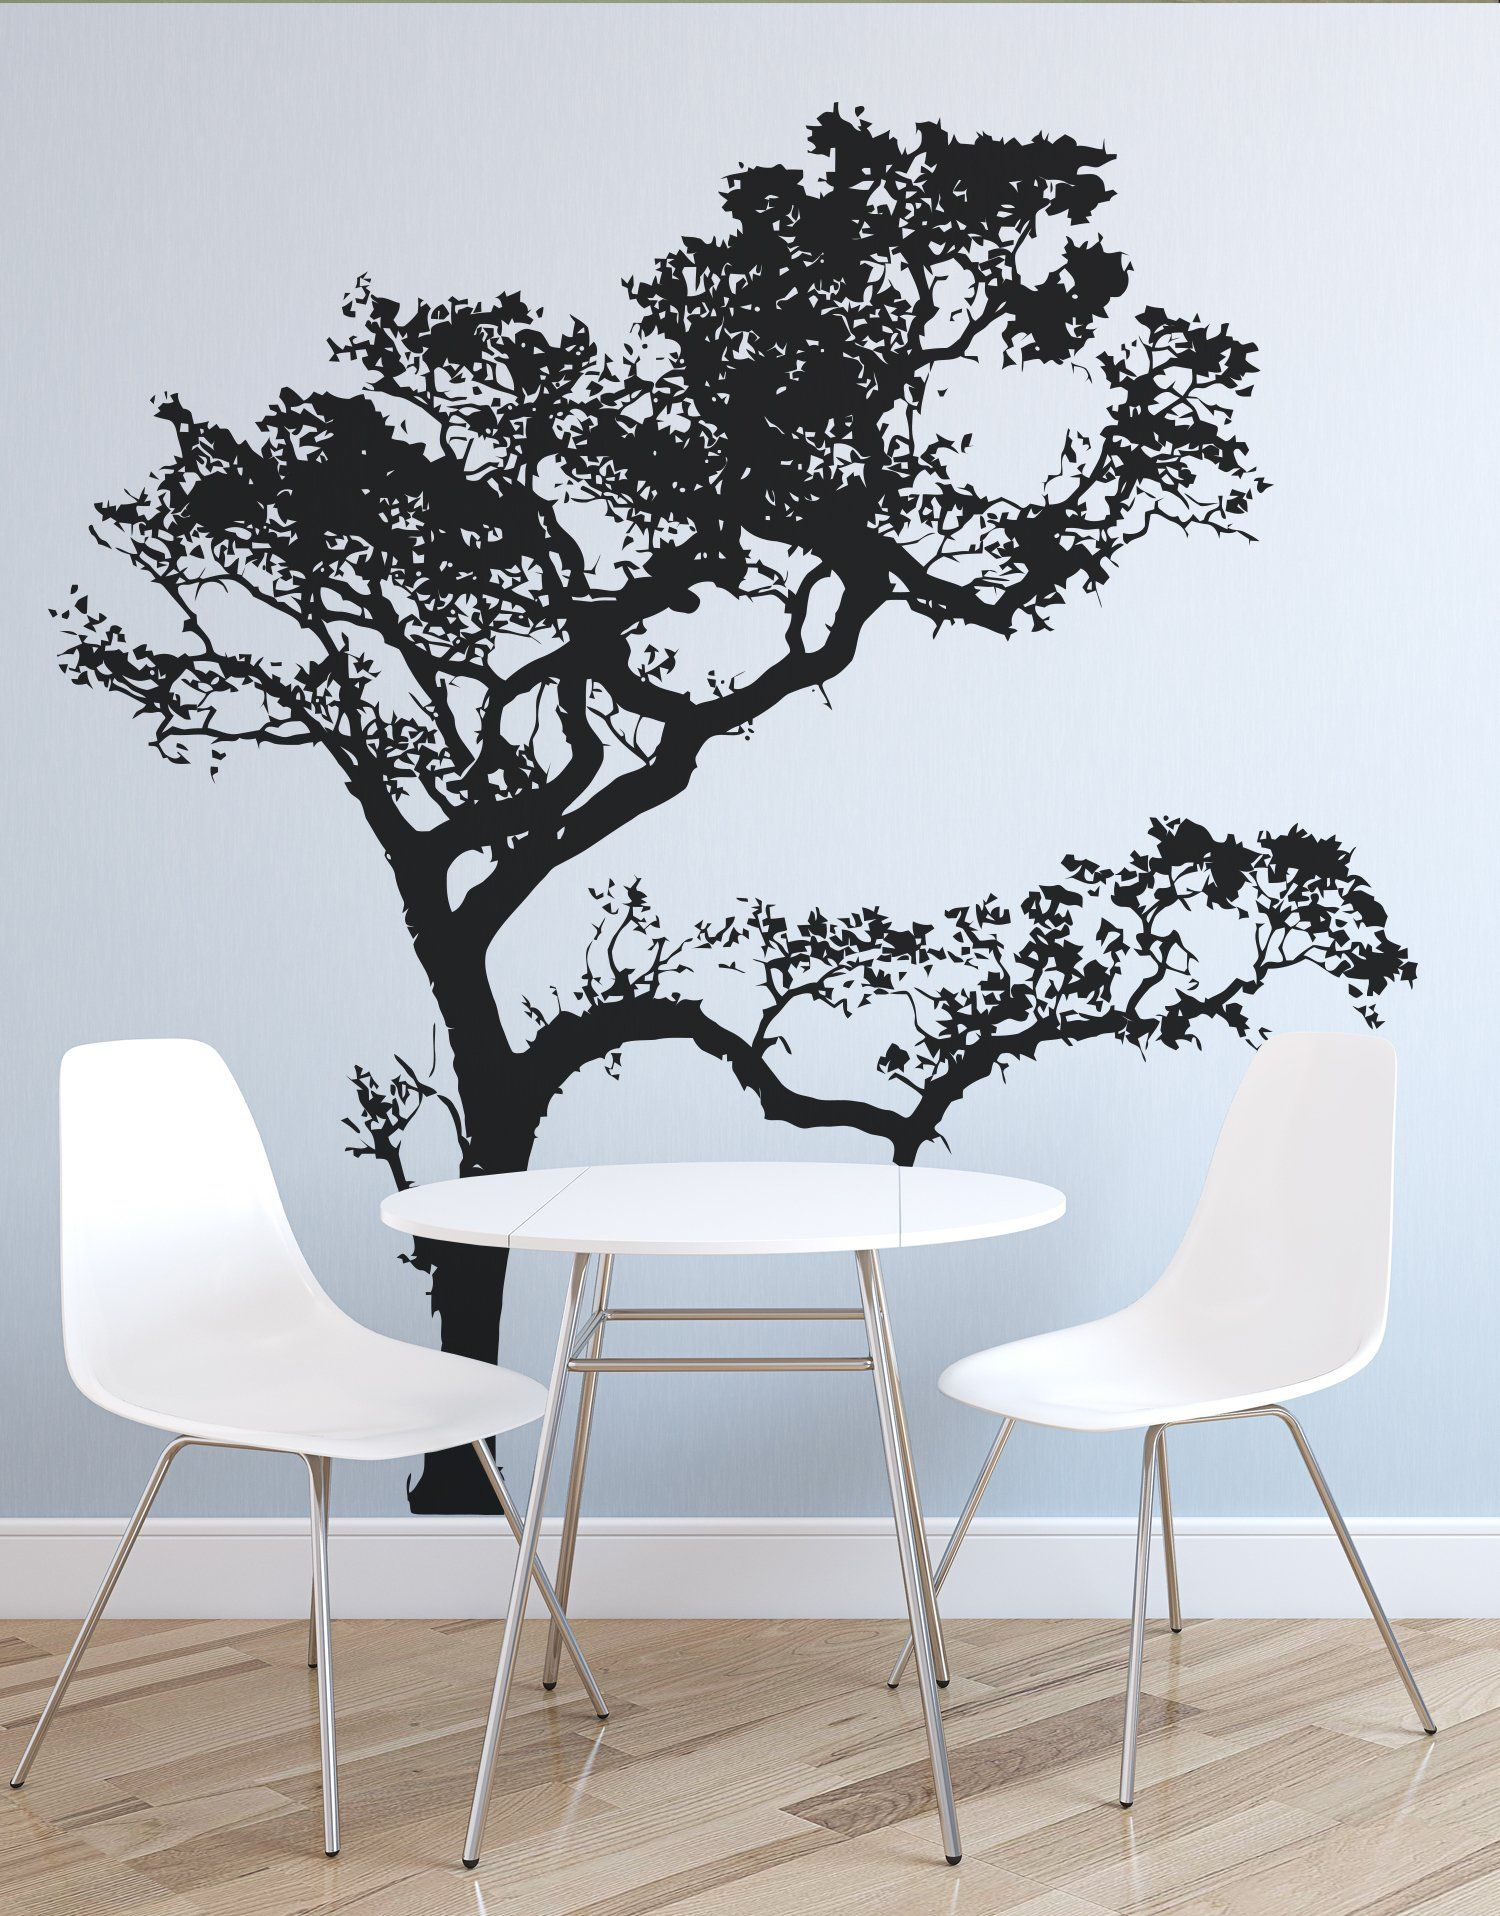 Big Oak Tree Wall Decal. 409 Tree wall, Wall decals